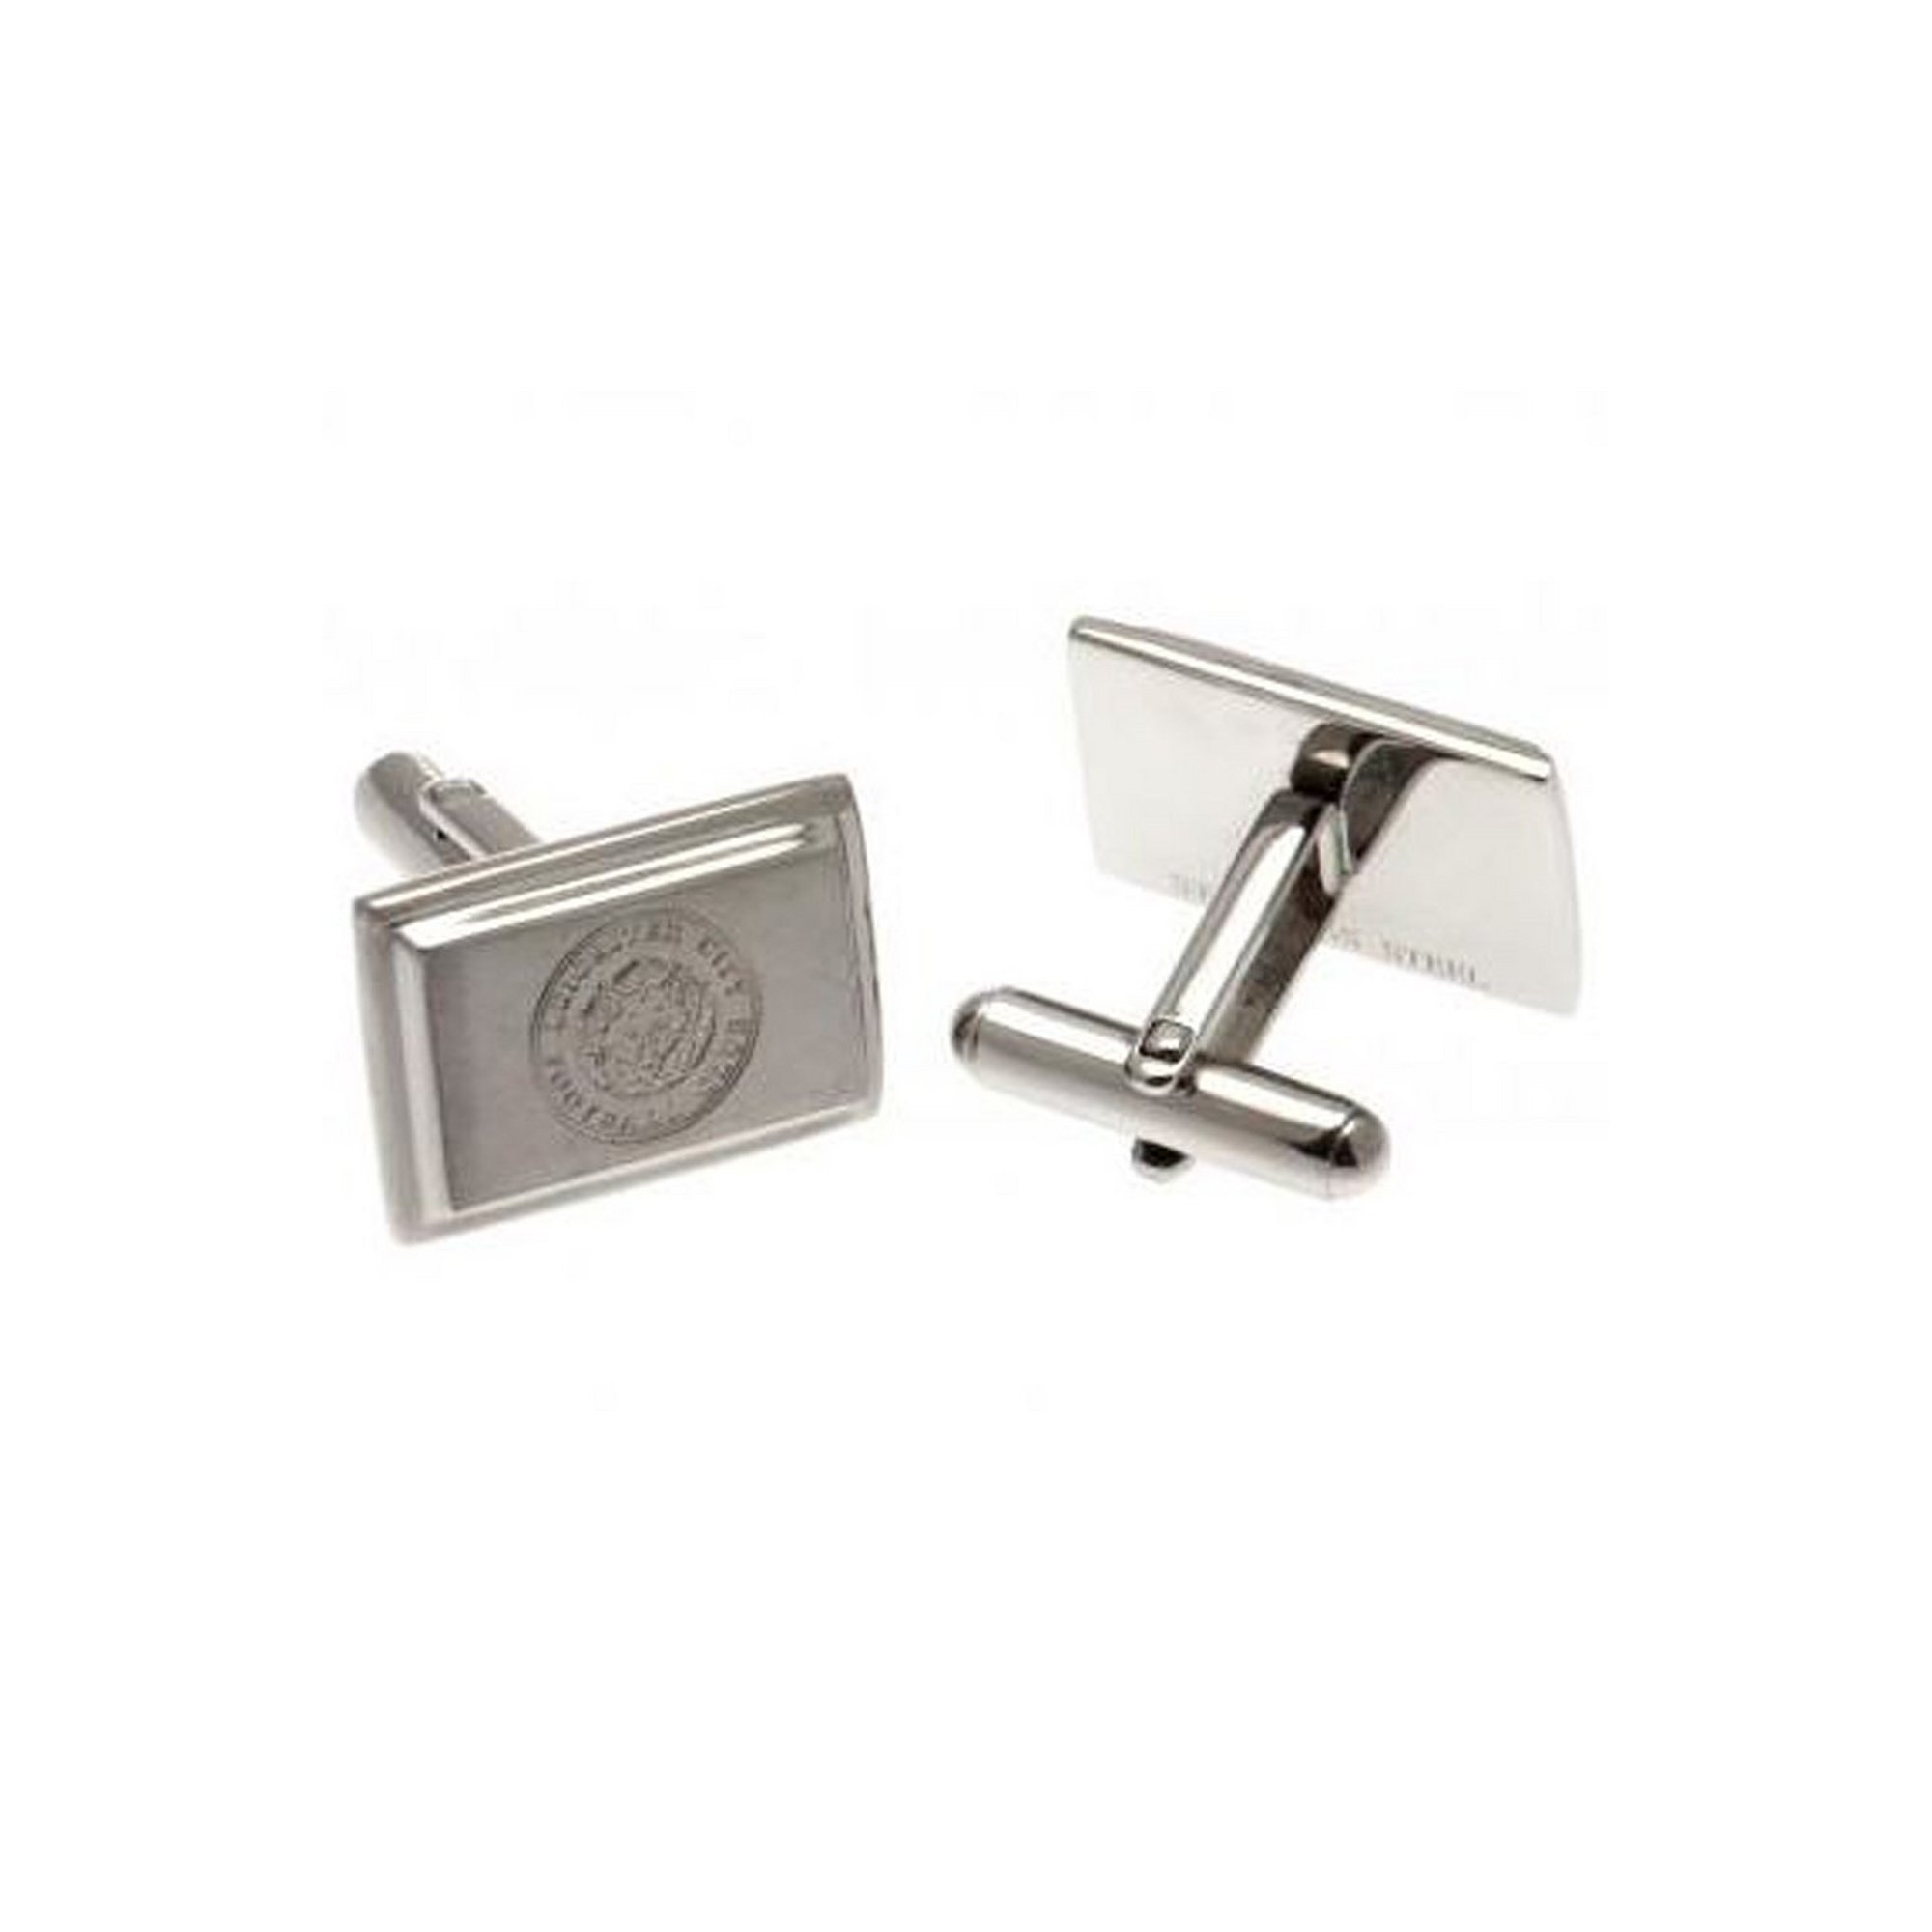 Image of Leicester City Stainless Steel Crest Cufflinks